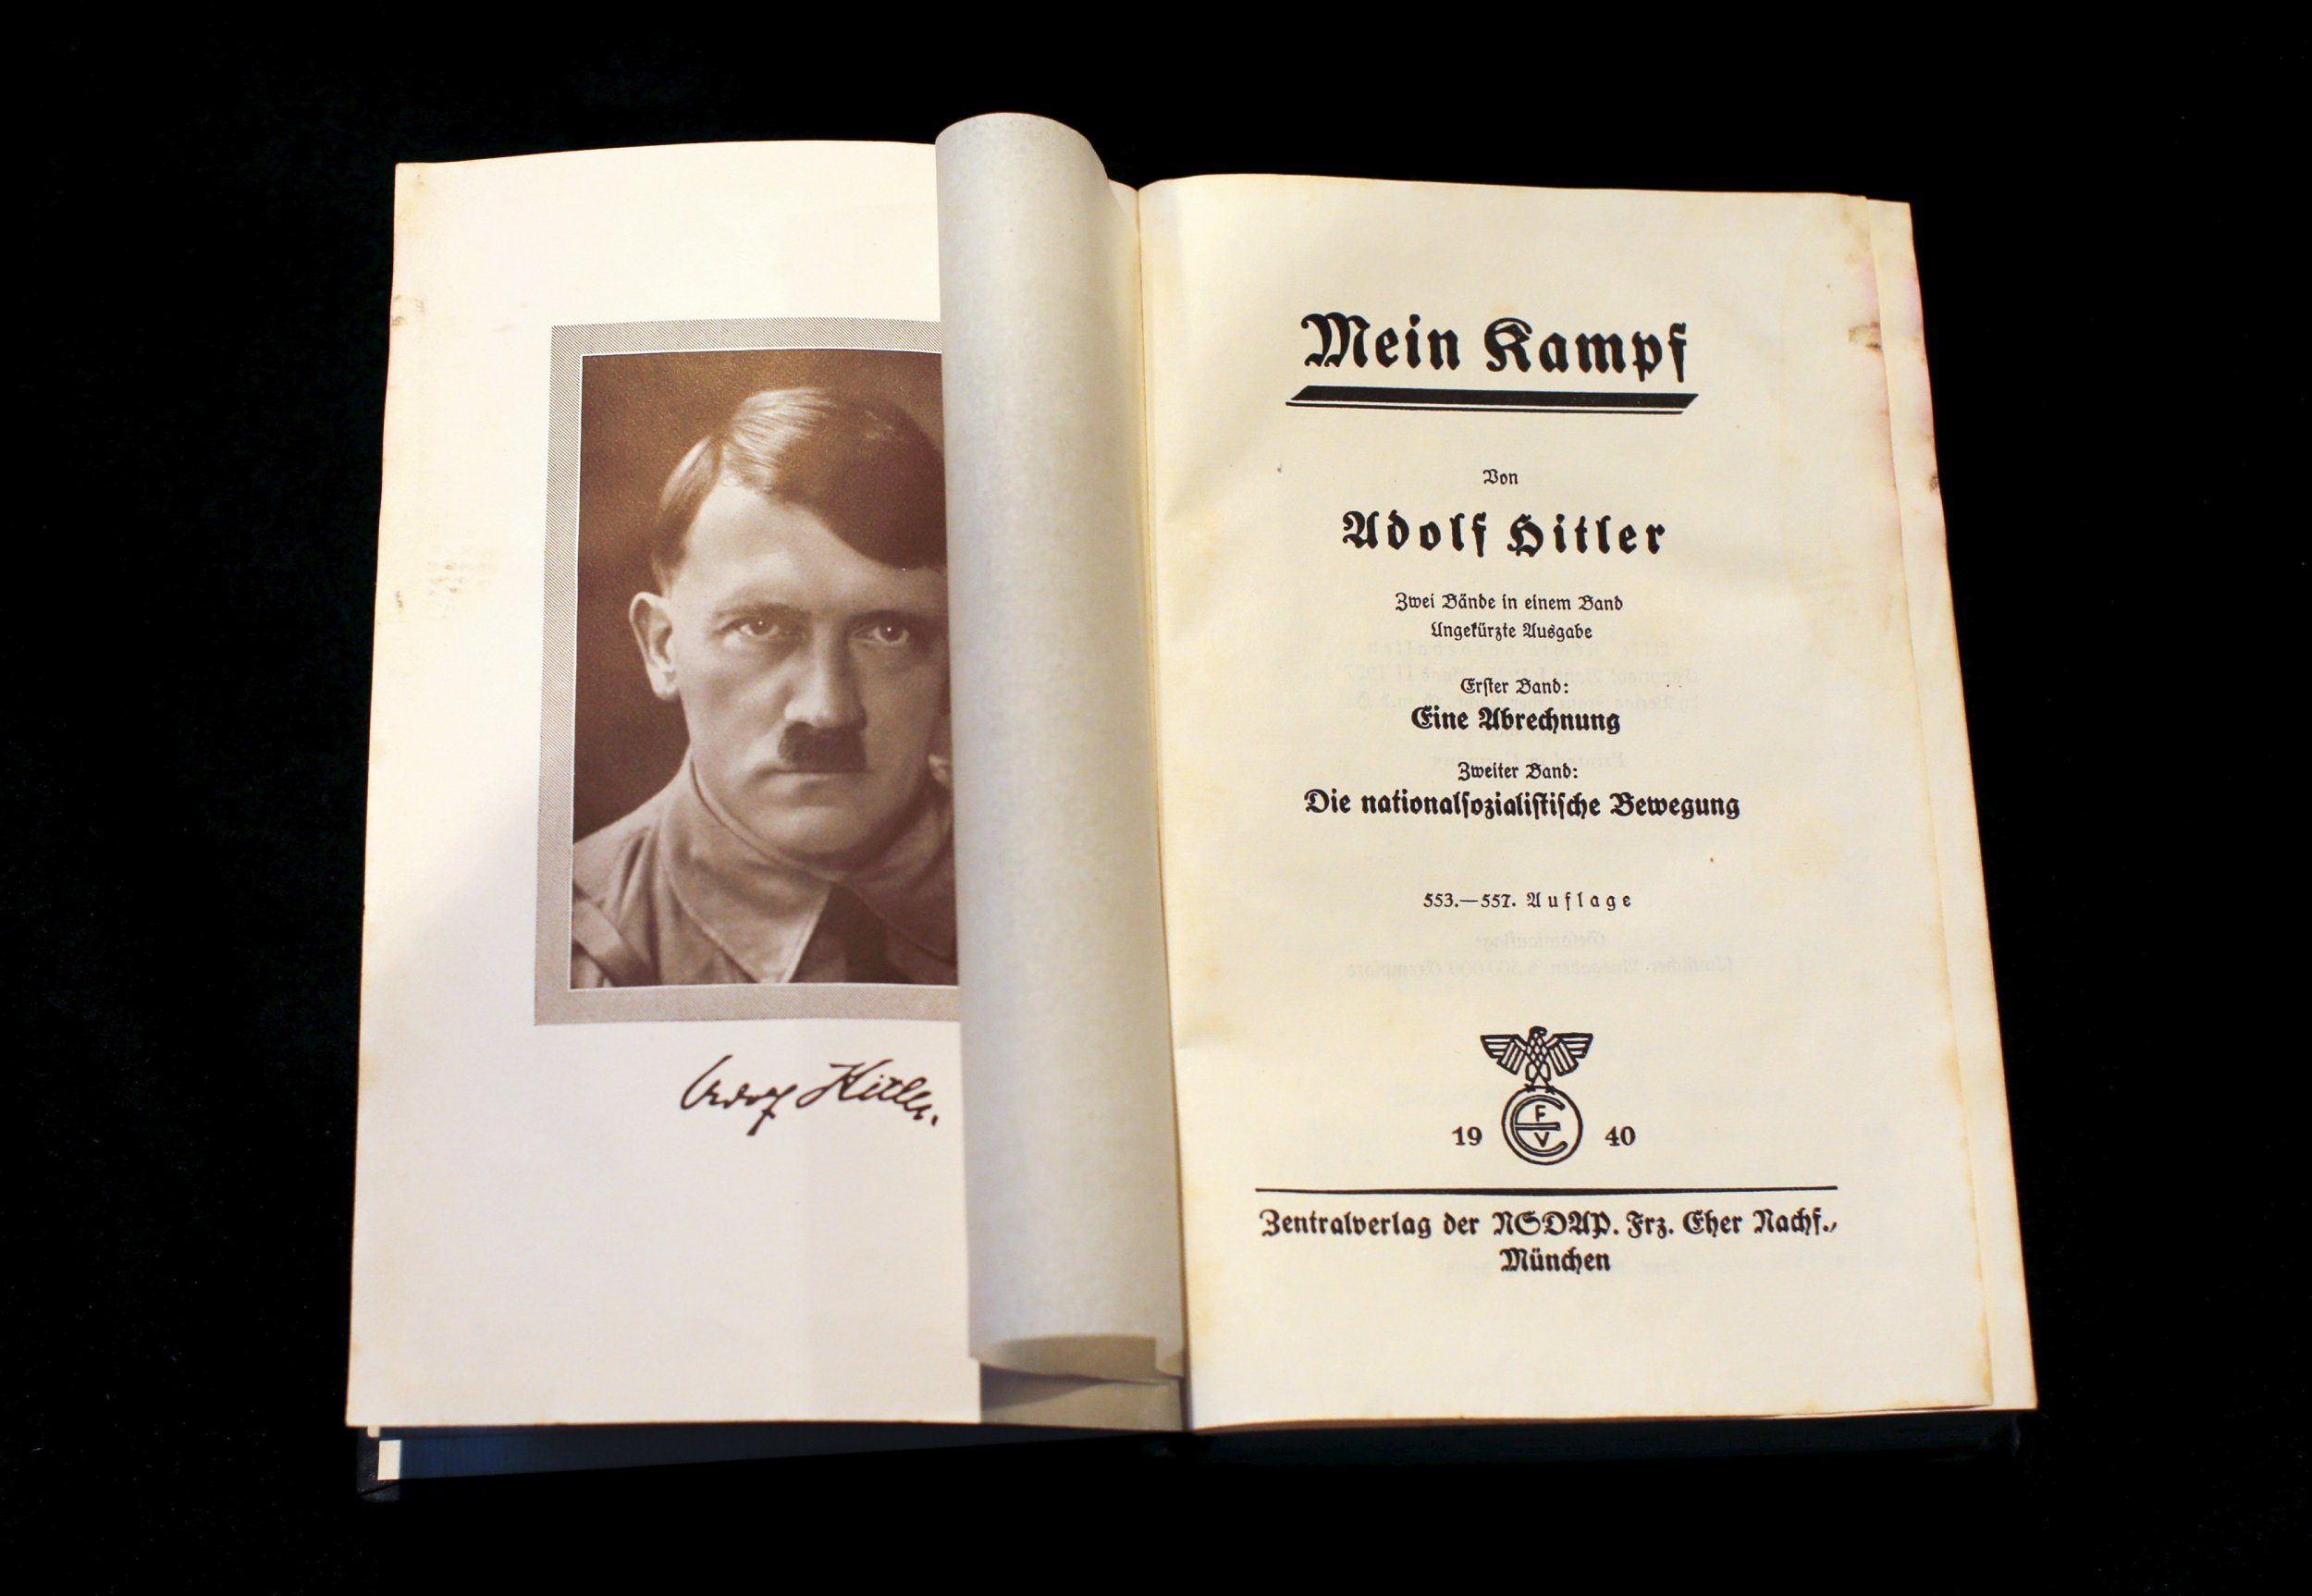 Excusing Fascism: How the American Press Covered Hitler, Mussolini